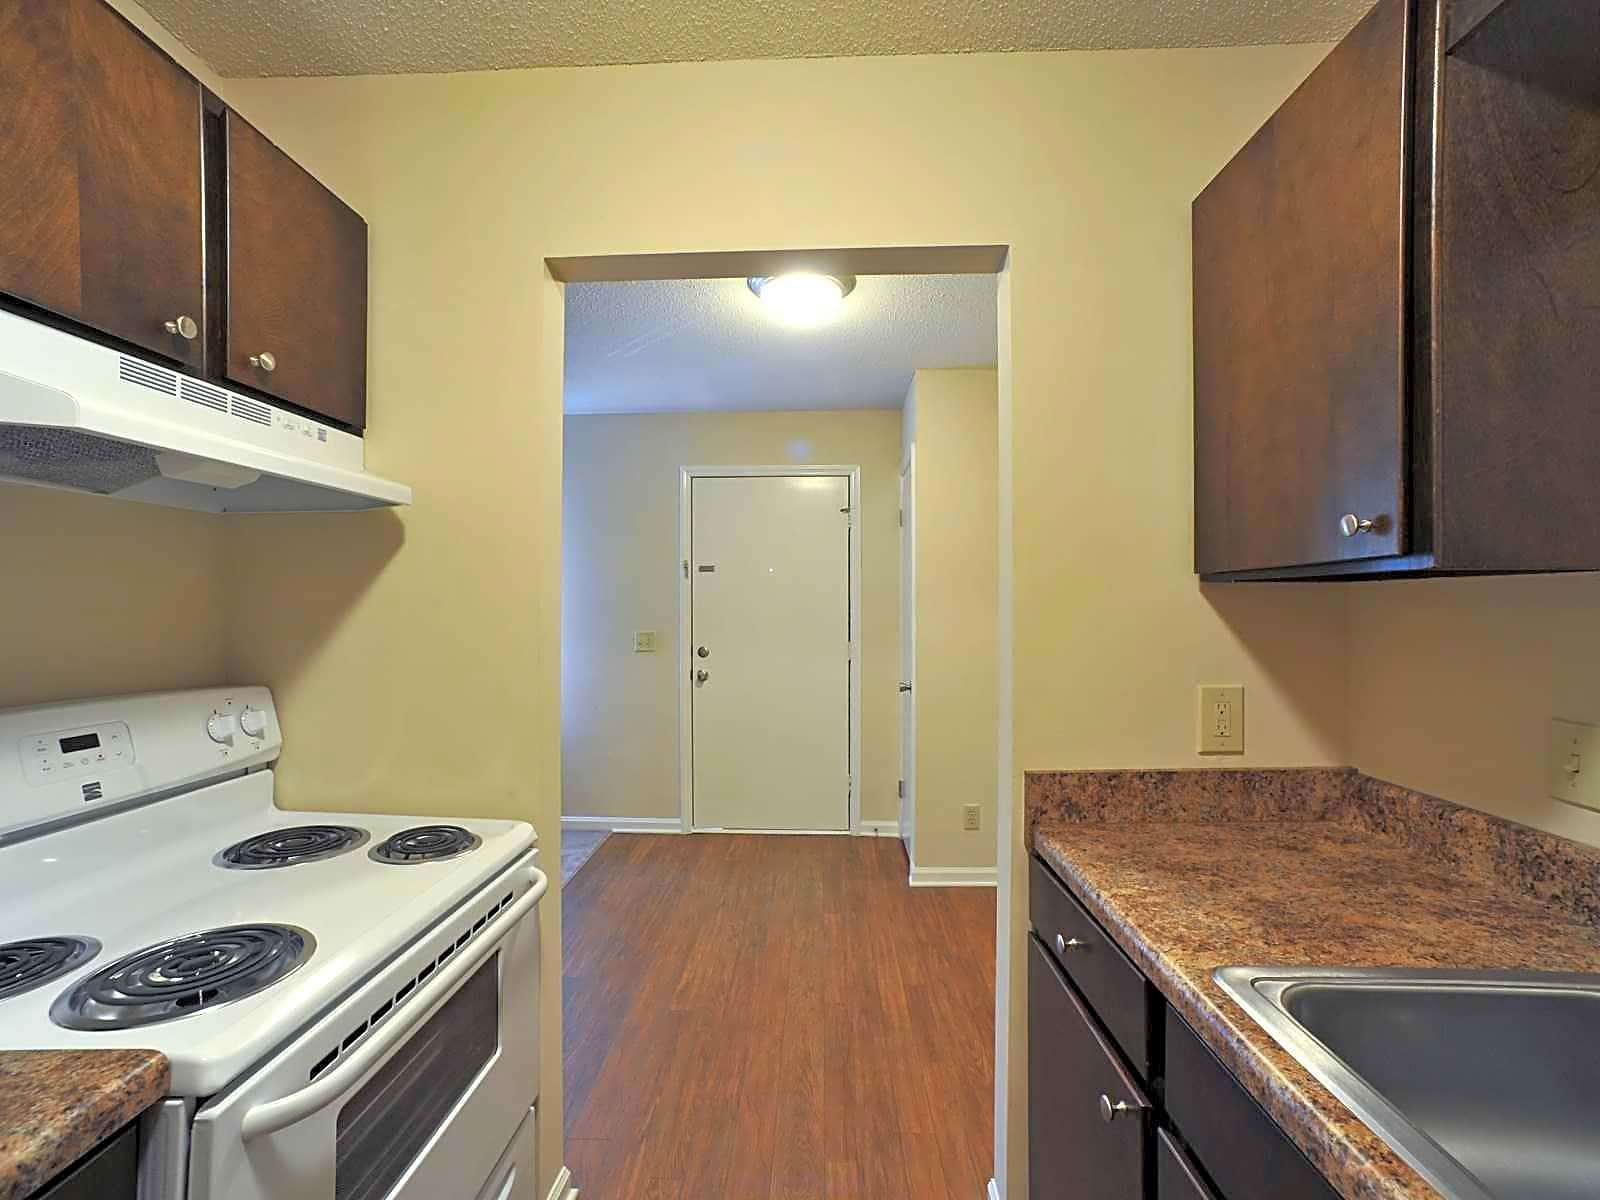 Photo: Greensboro Apartment for Rent - $650.00 / month; 2 Bd & 1 Ba